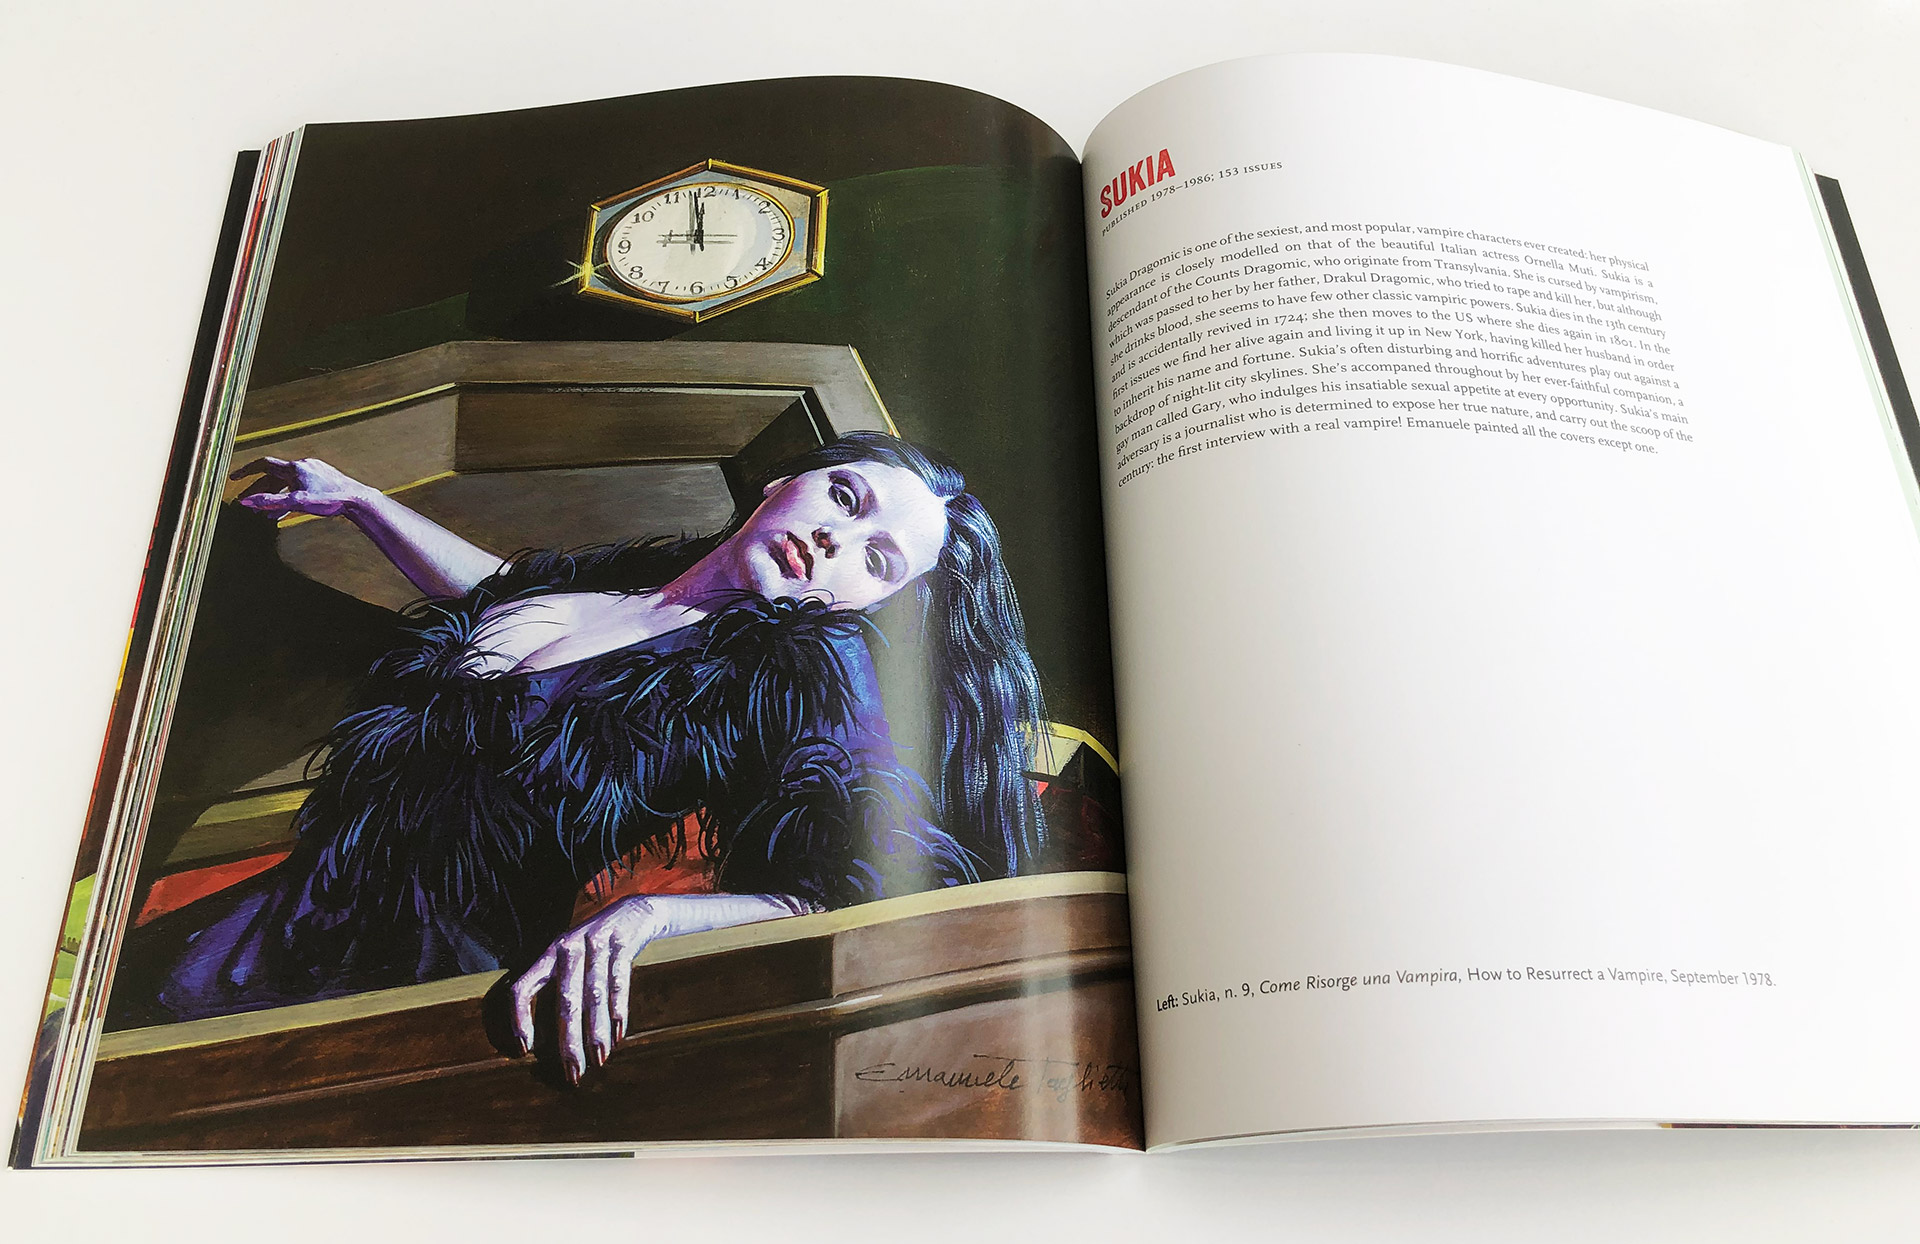 Sex And Horror: The Art Of Emanuele Taglietti Book Review